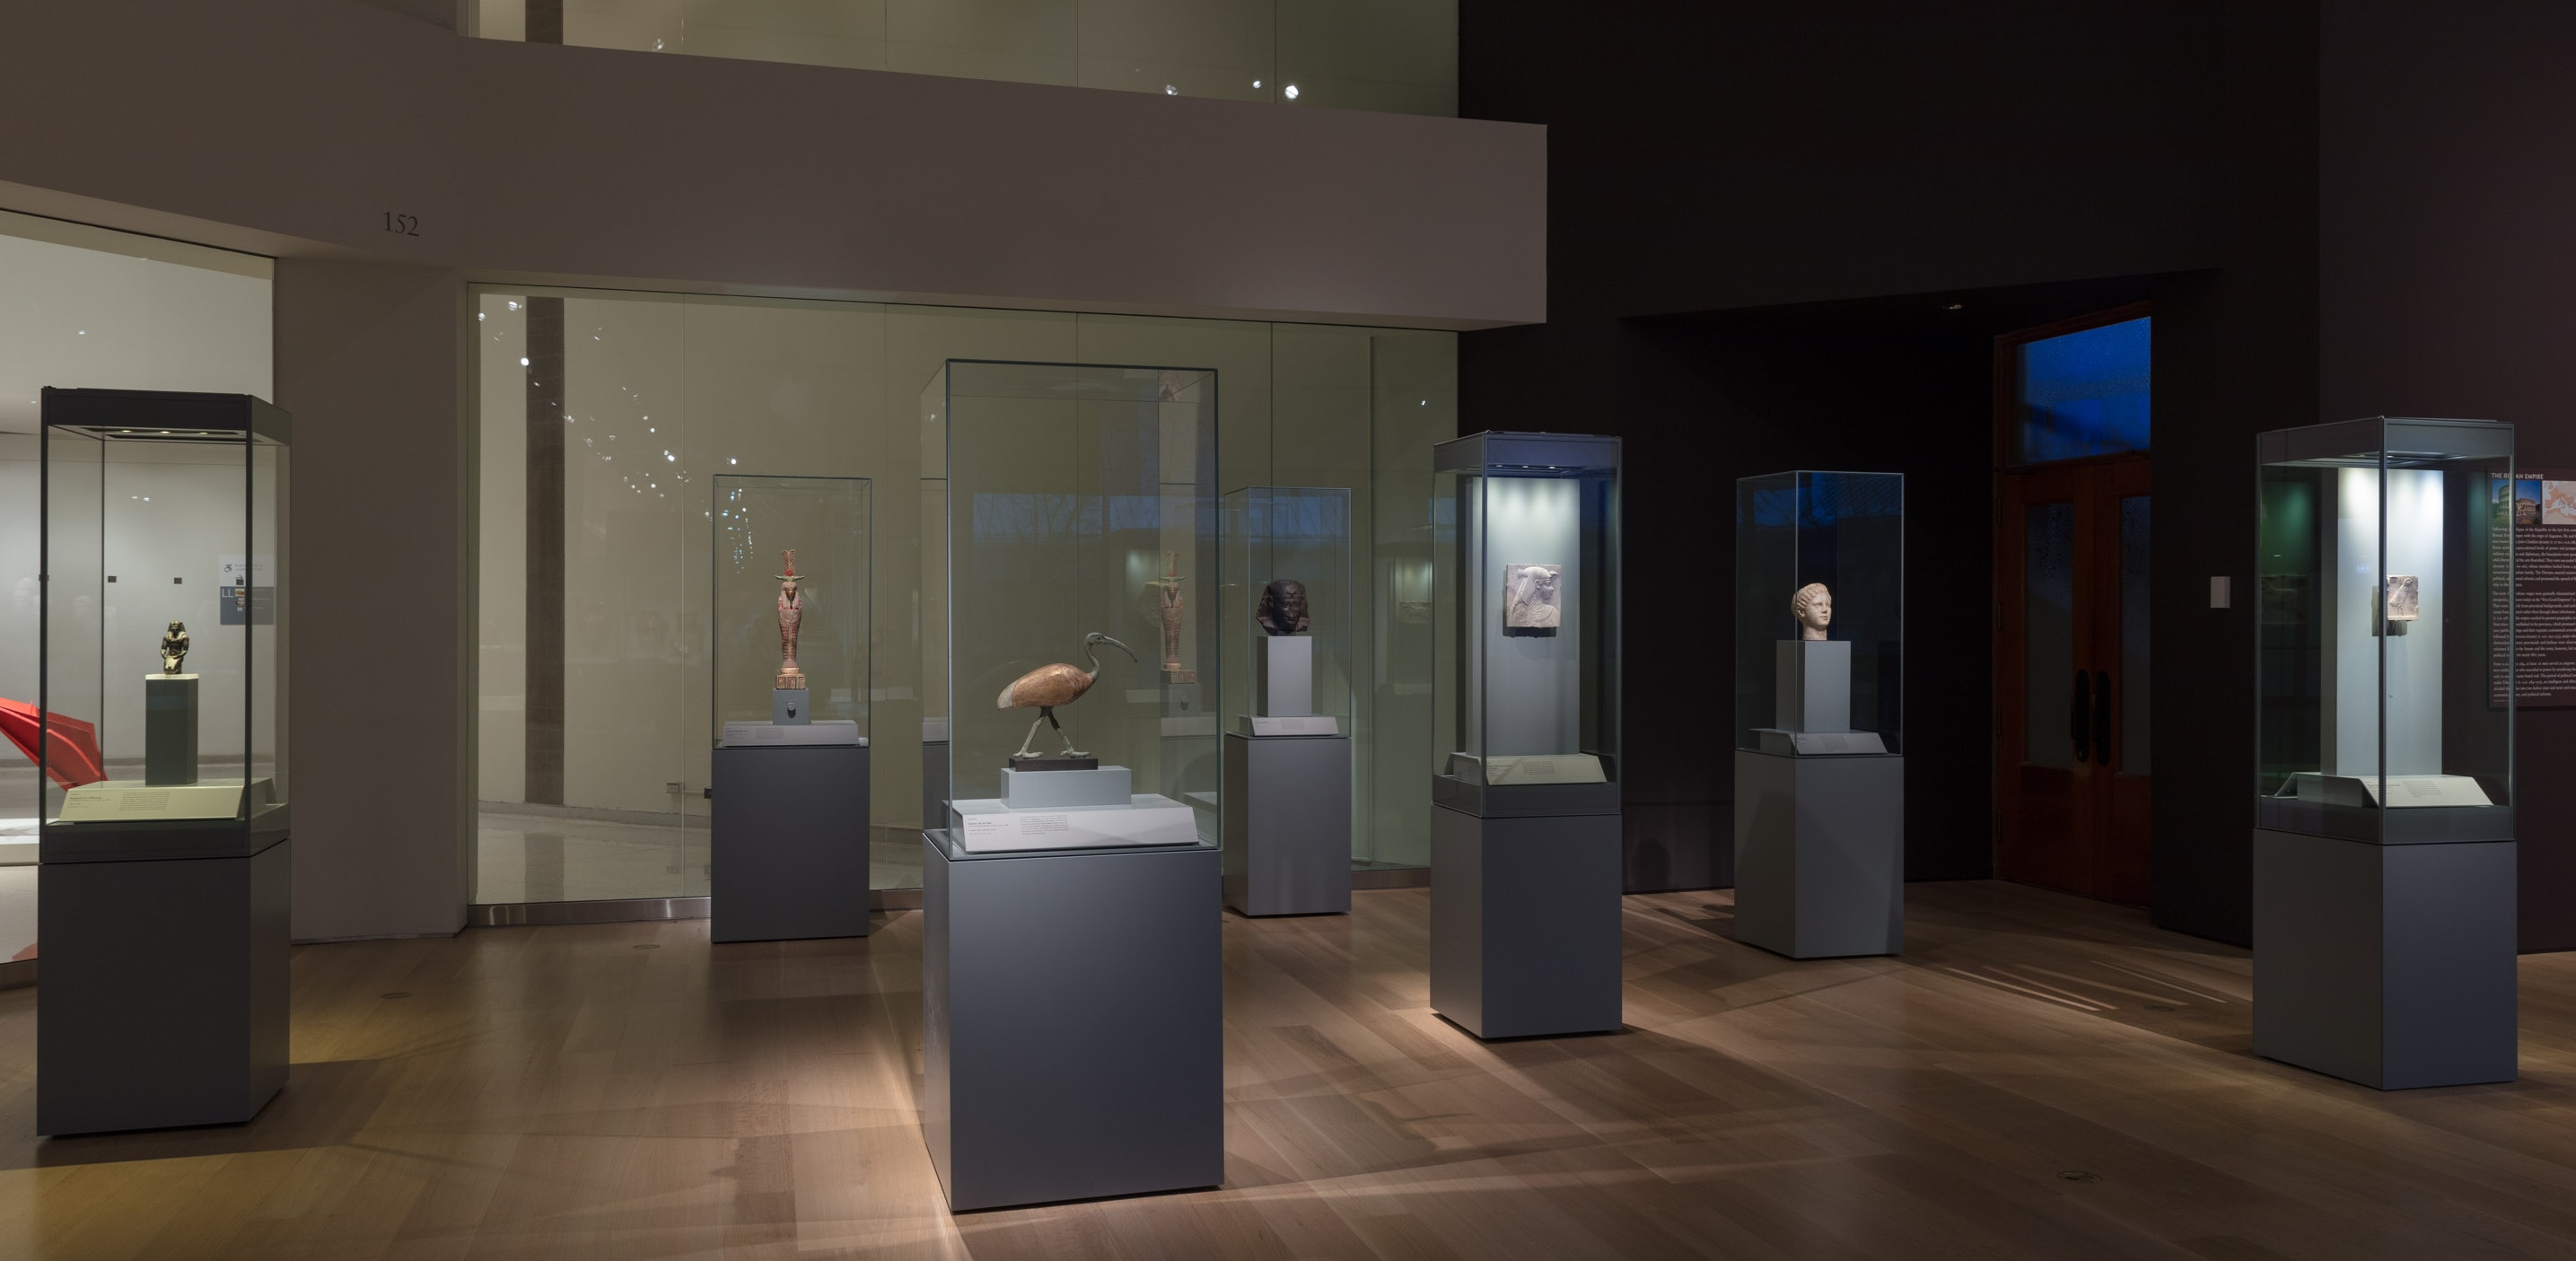 Photo of the Ptolemaic Egyptian installation in the Jaharis Galleries